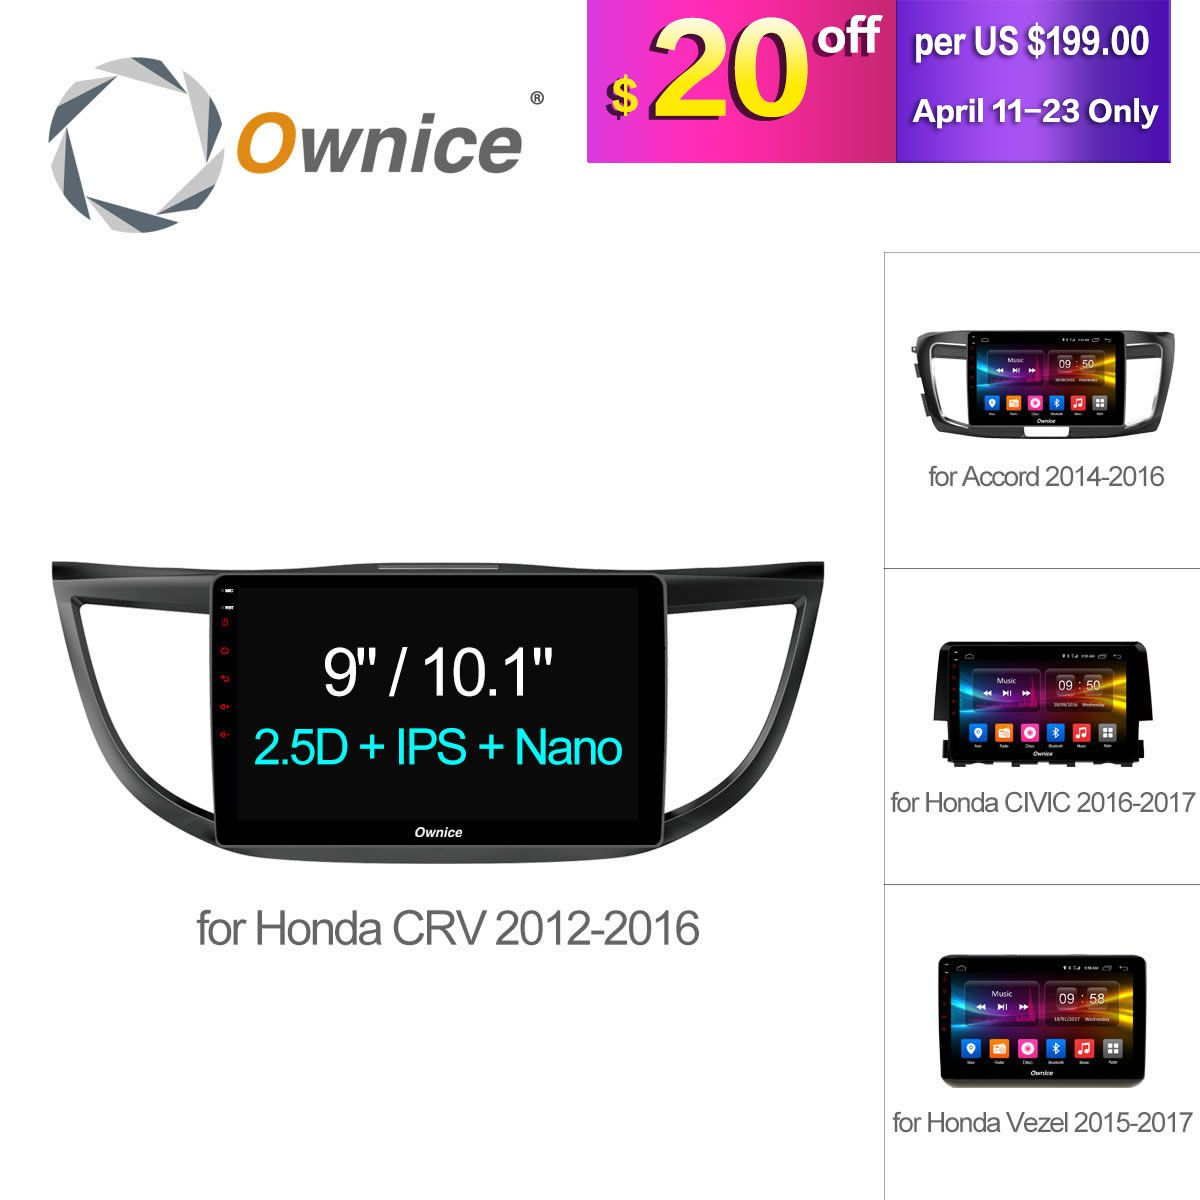 Ownice C500+ 10.1 HD Android 6.0 Octa 8 Core  Car radio player GPS Navi for HONDA 2012 - 2016 2017 Vezel CIVIC Accord CRV 32G